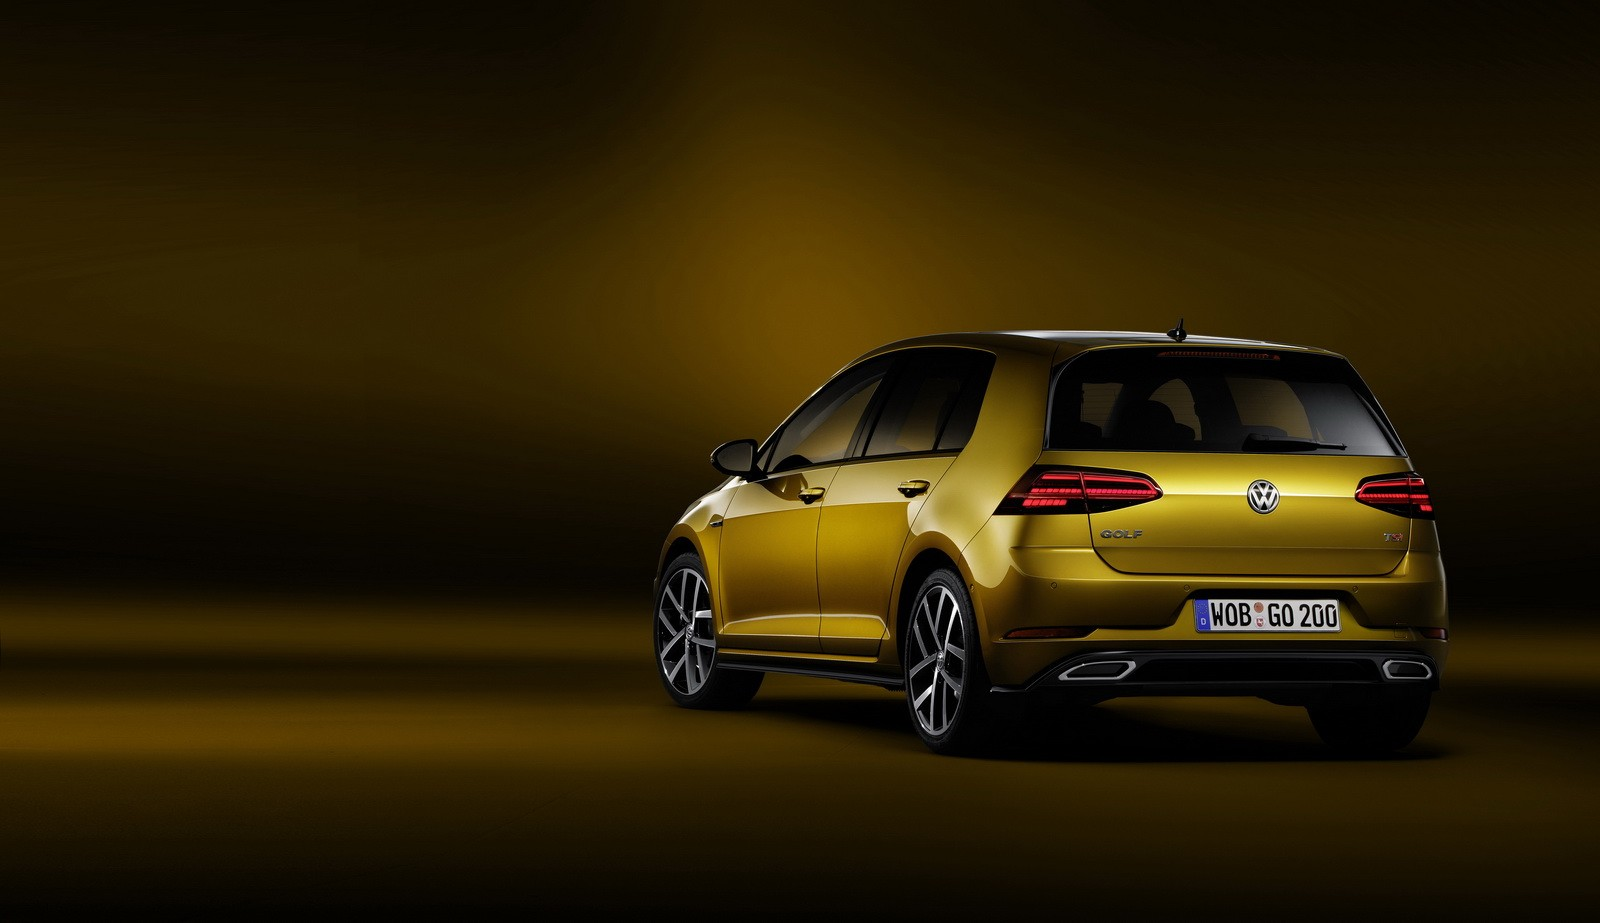 2017 vw golf facelift debuts with 1 5 tsi led headlights and golden paint autoevolution. Black Bedroom Furniture Sets. Home Design Ideas